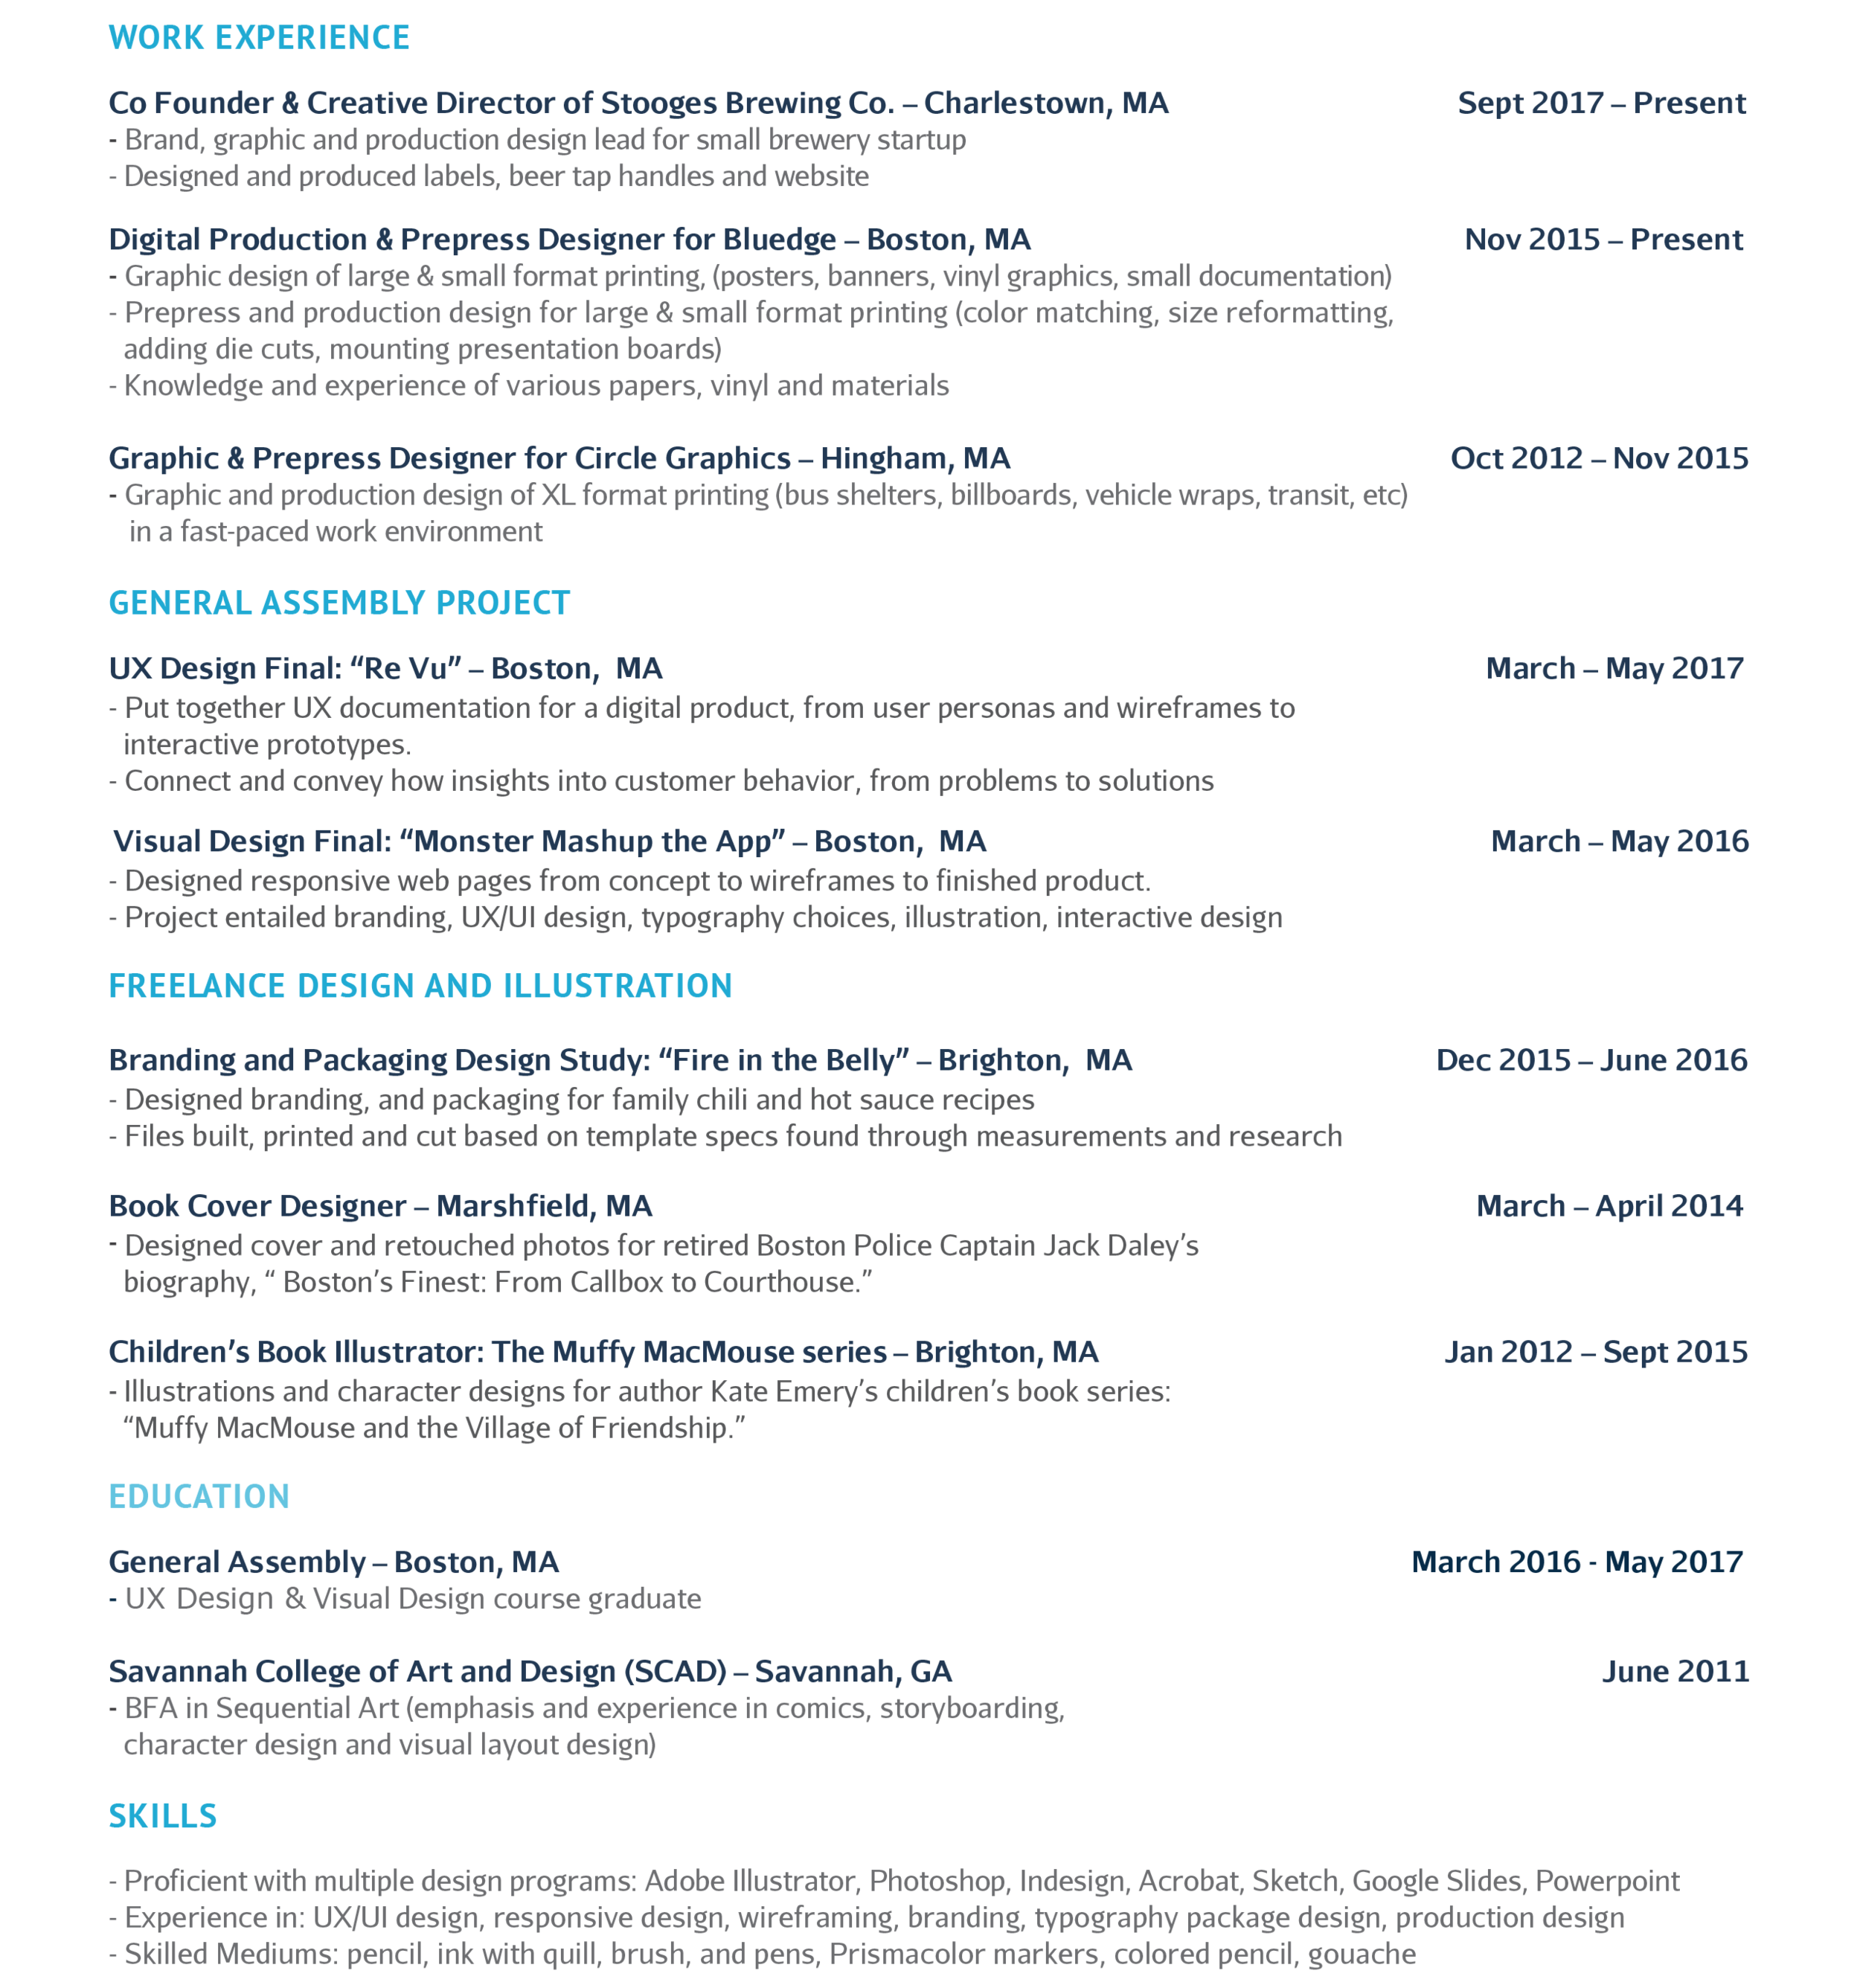 RichDaley_Resume_Winter_2017-18-01.png